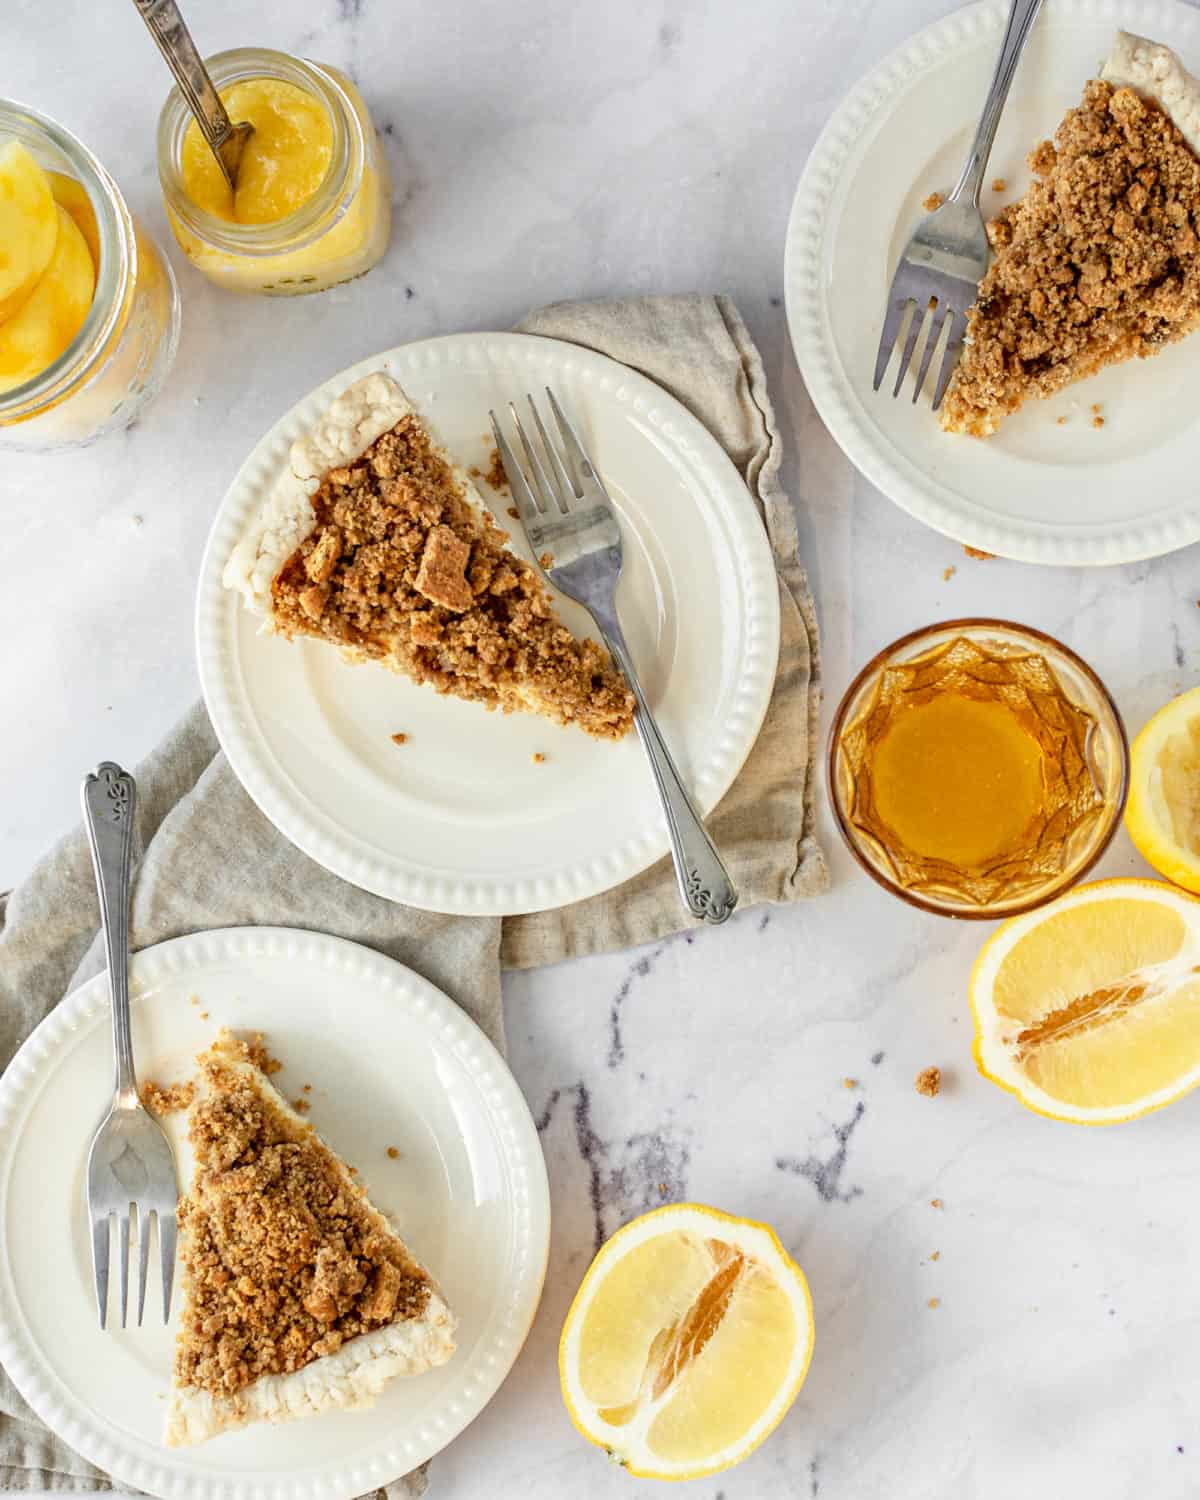 Three slices of lemon crunch pie on plates with forks on a table.